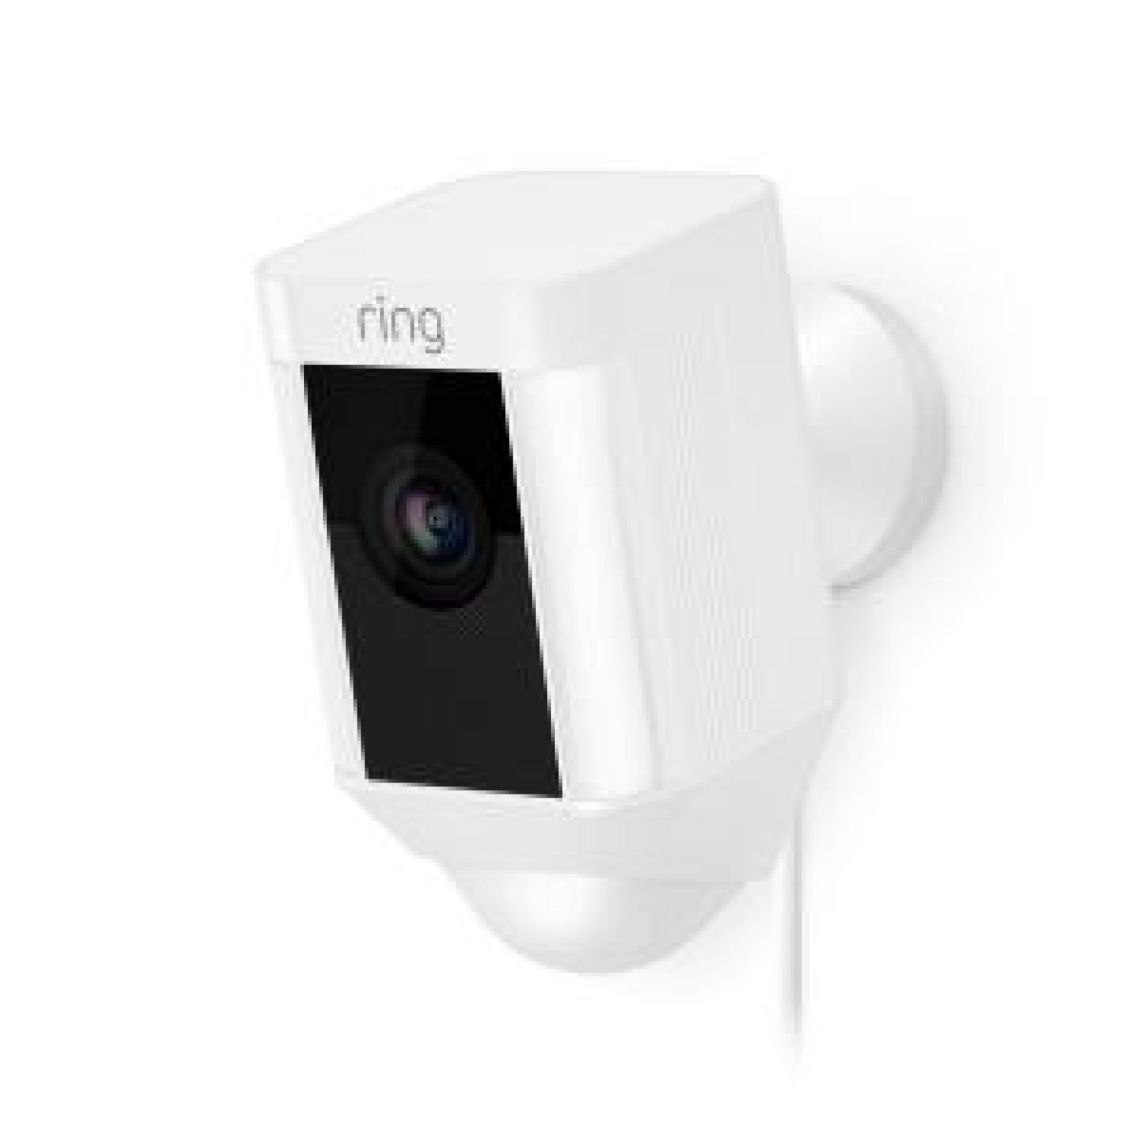 Ring Spotlight Cam Wired Outdoor Rectangle Security Camera, White-8SH1P7-WEN0 - The Home Depot